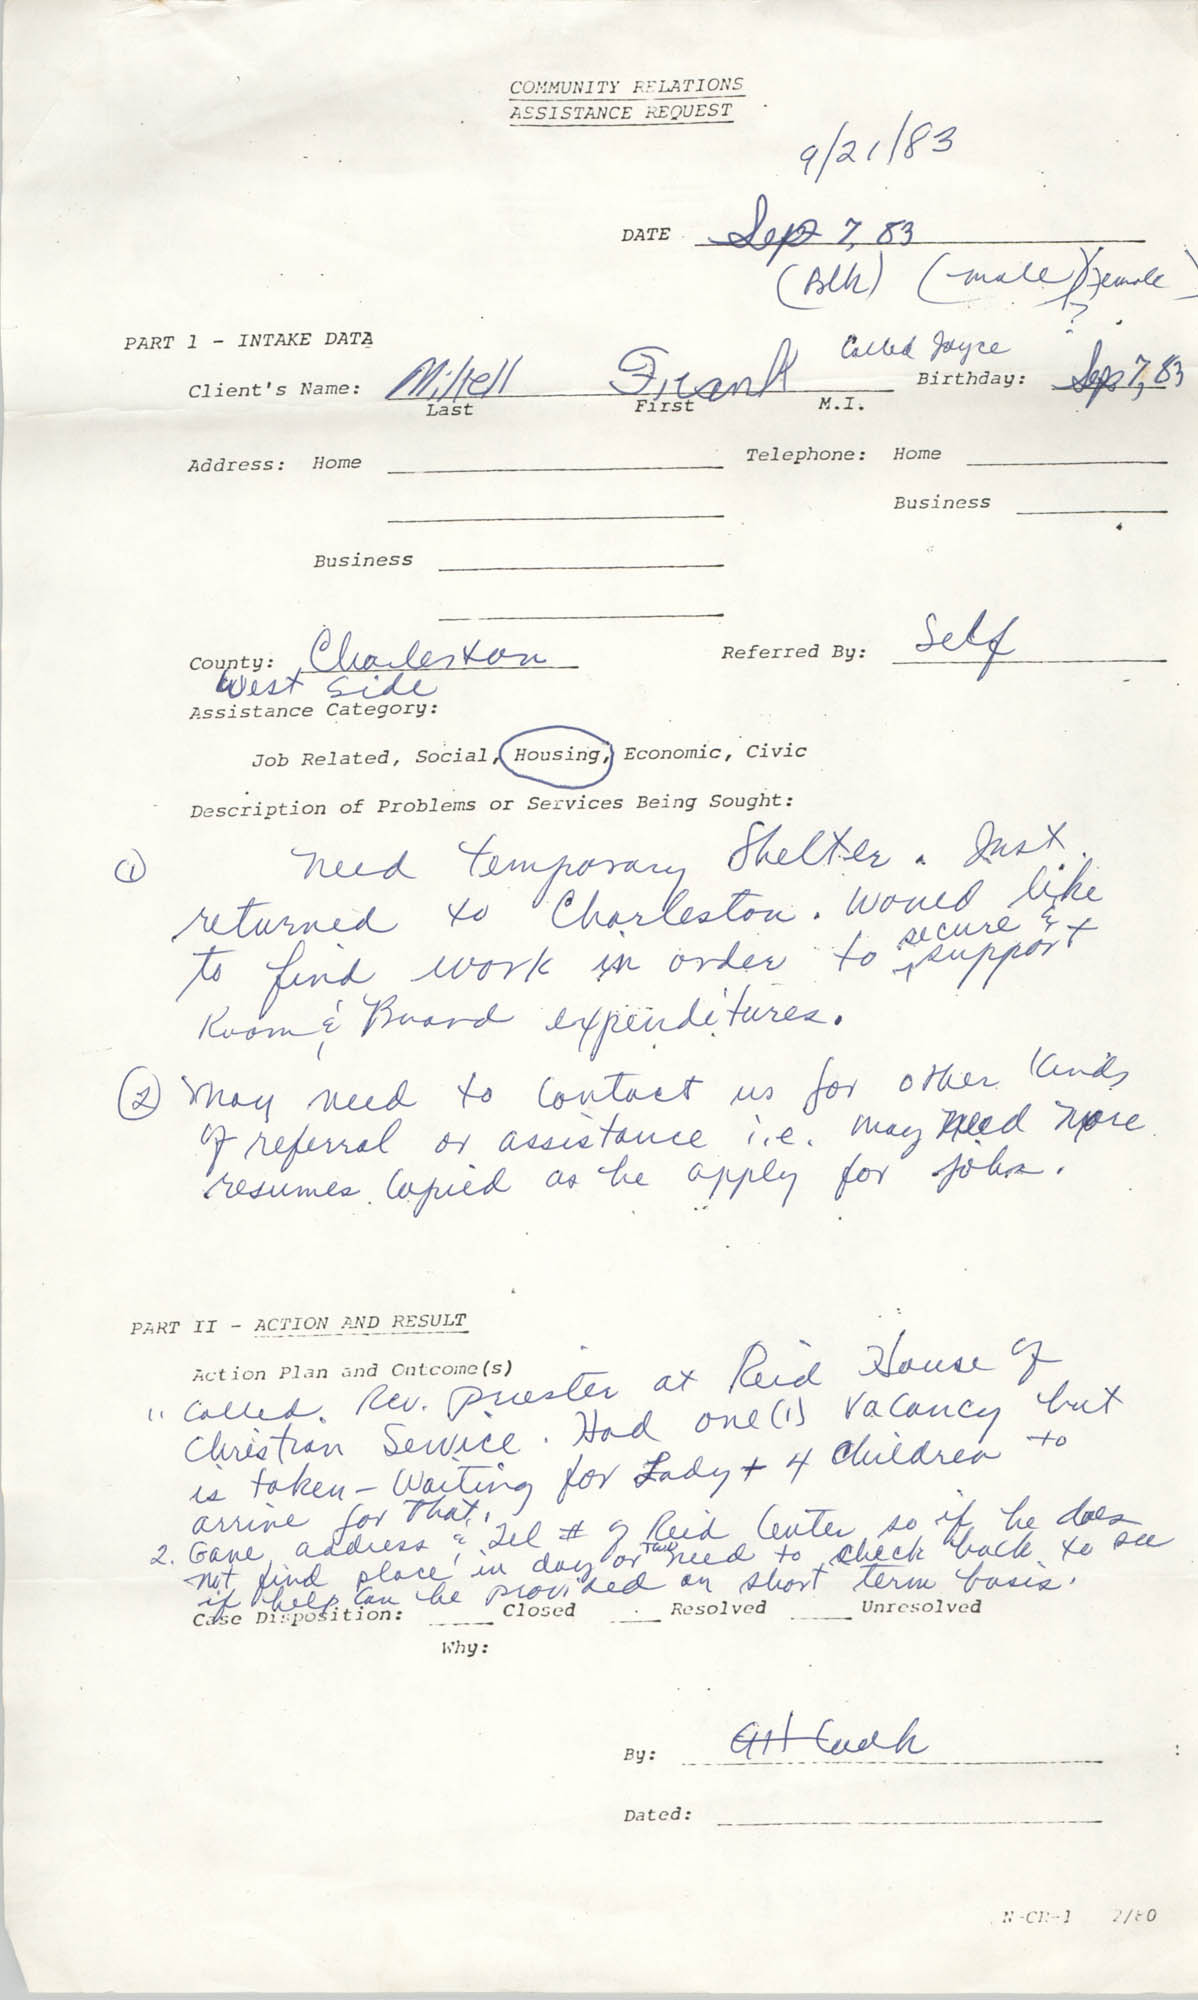 Community Relations Assistance Request, September 21, 1983